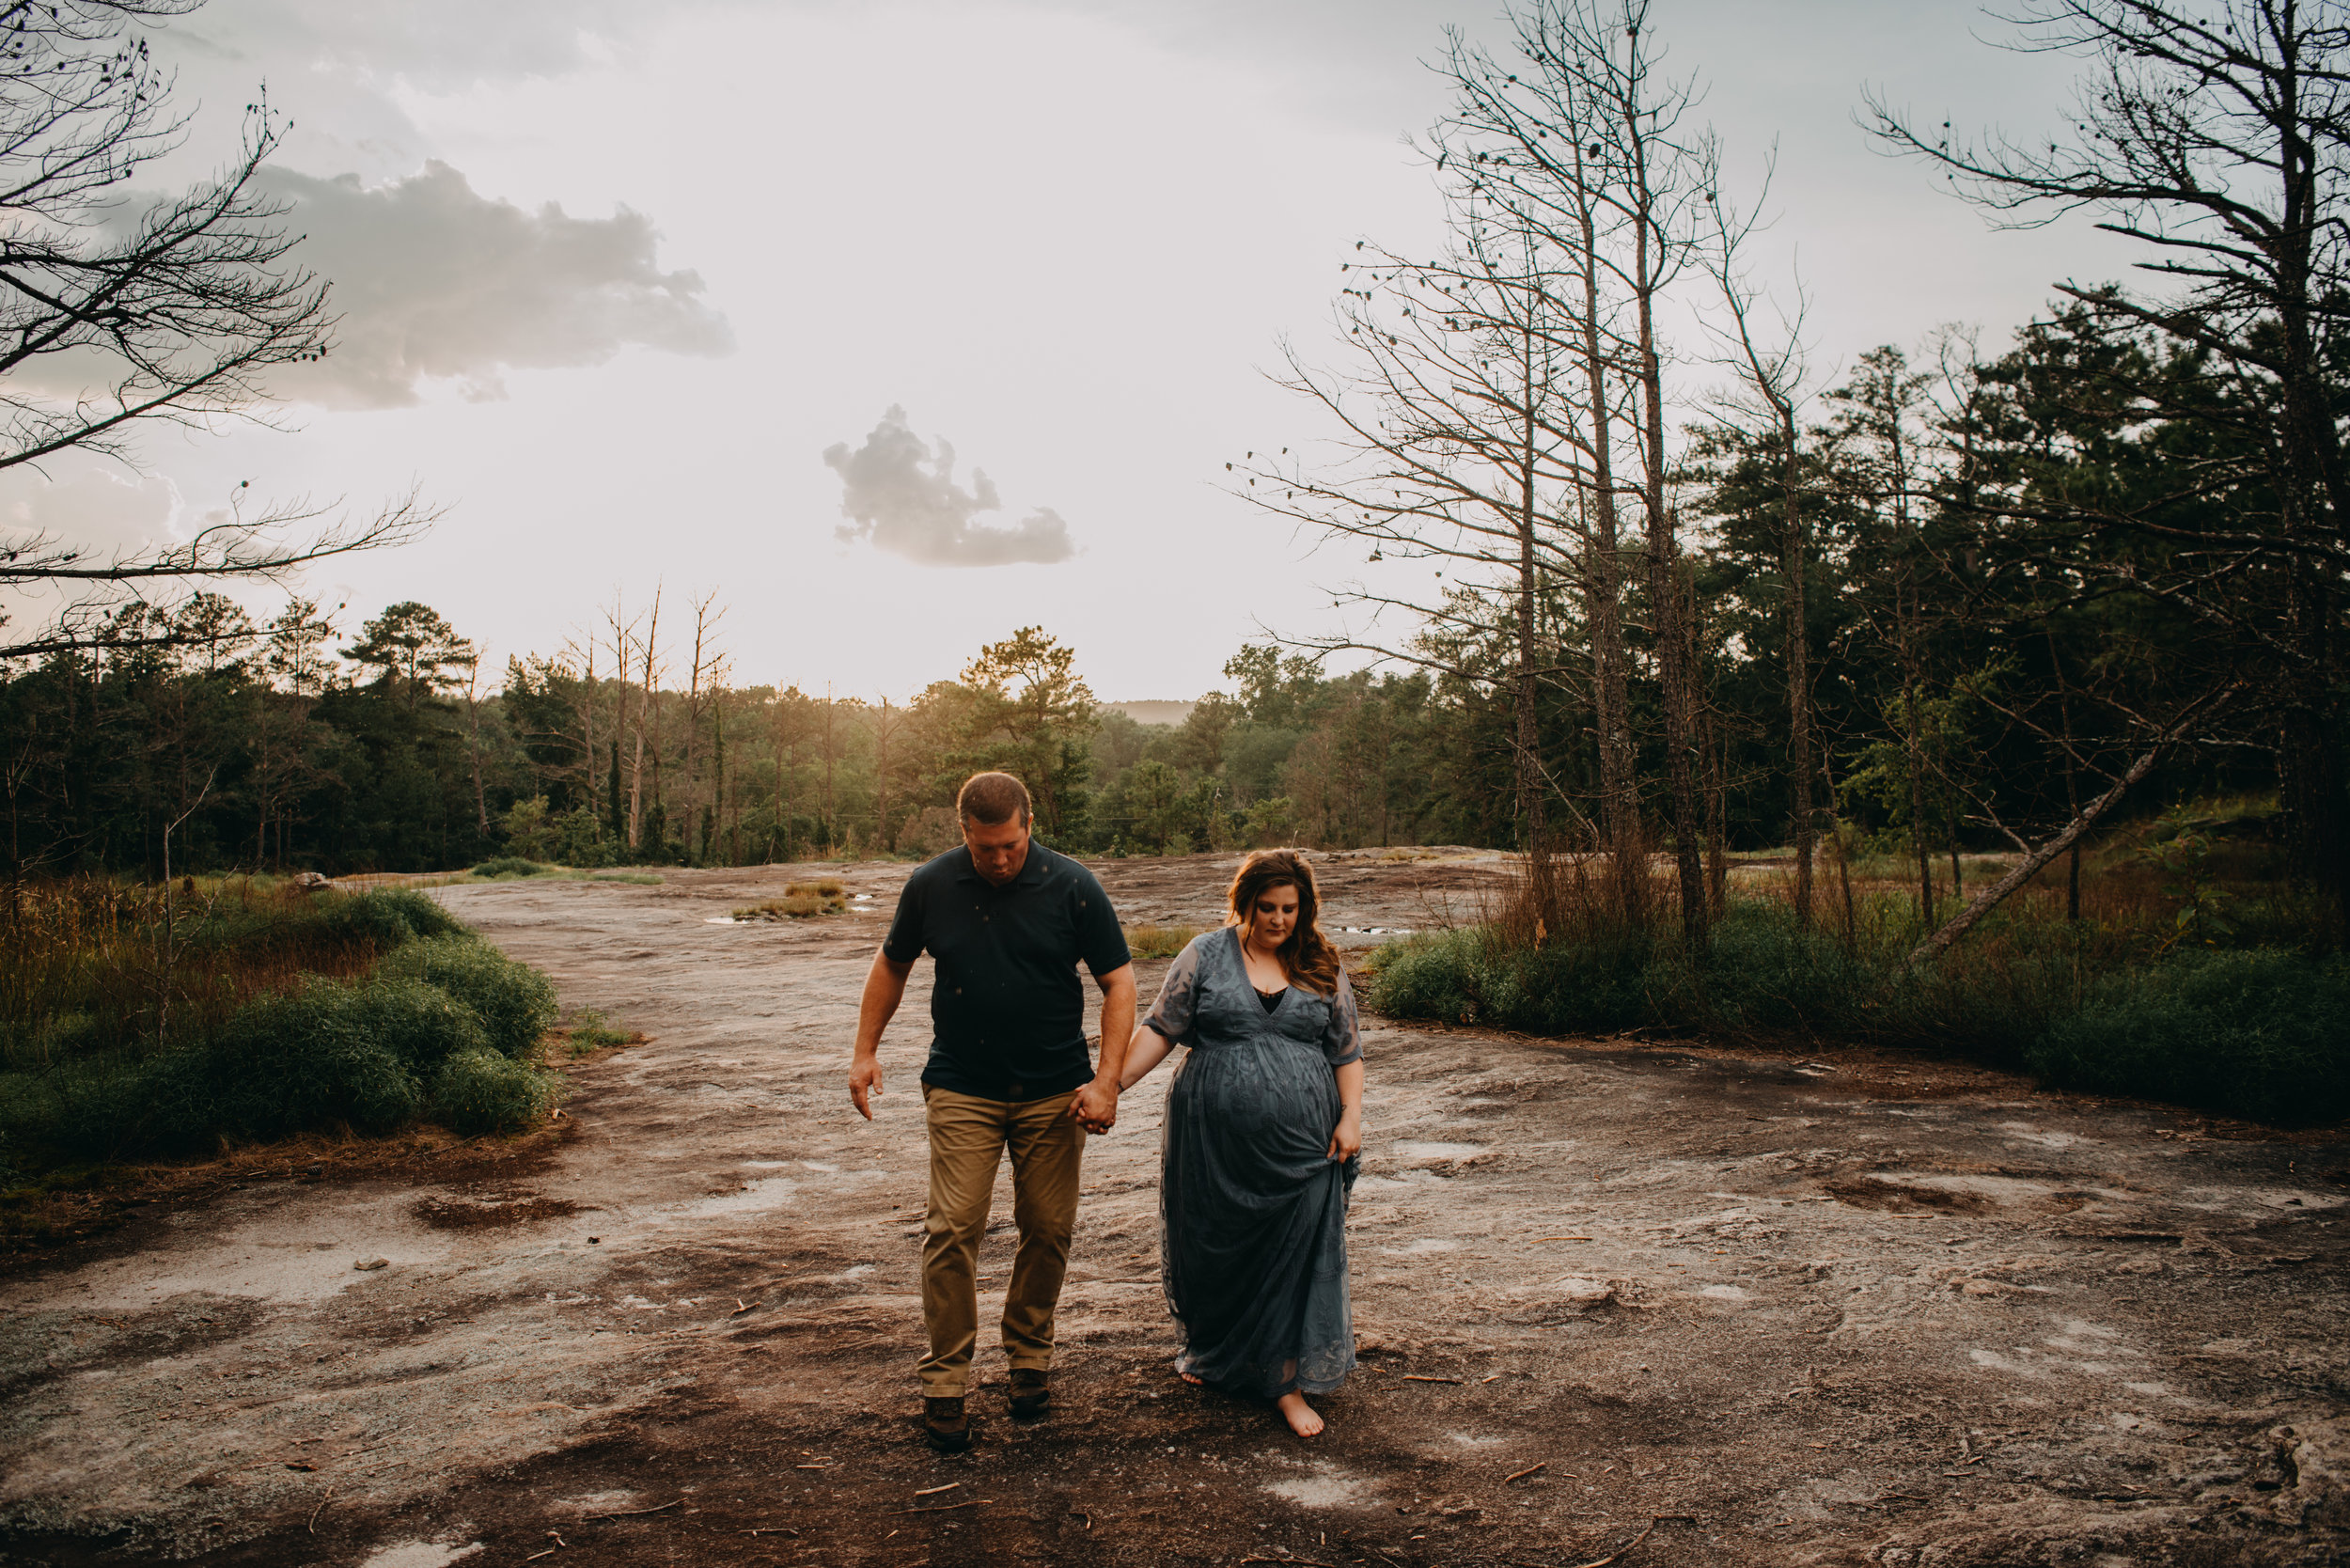 Best Atlanta Maternity Photographer, Maternity Photography, Sunset at Arabia Mountain, Arabia Mountain, golden hour maternity photos, maternity shoot ideas